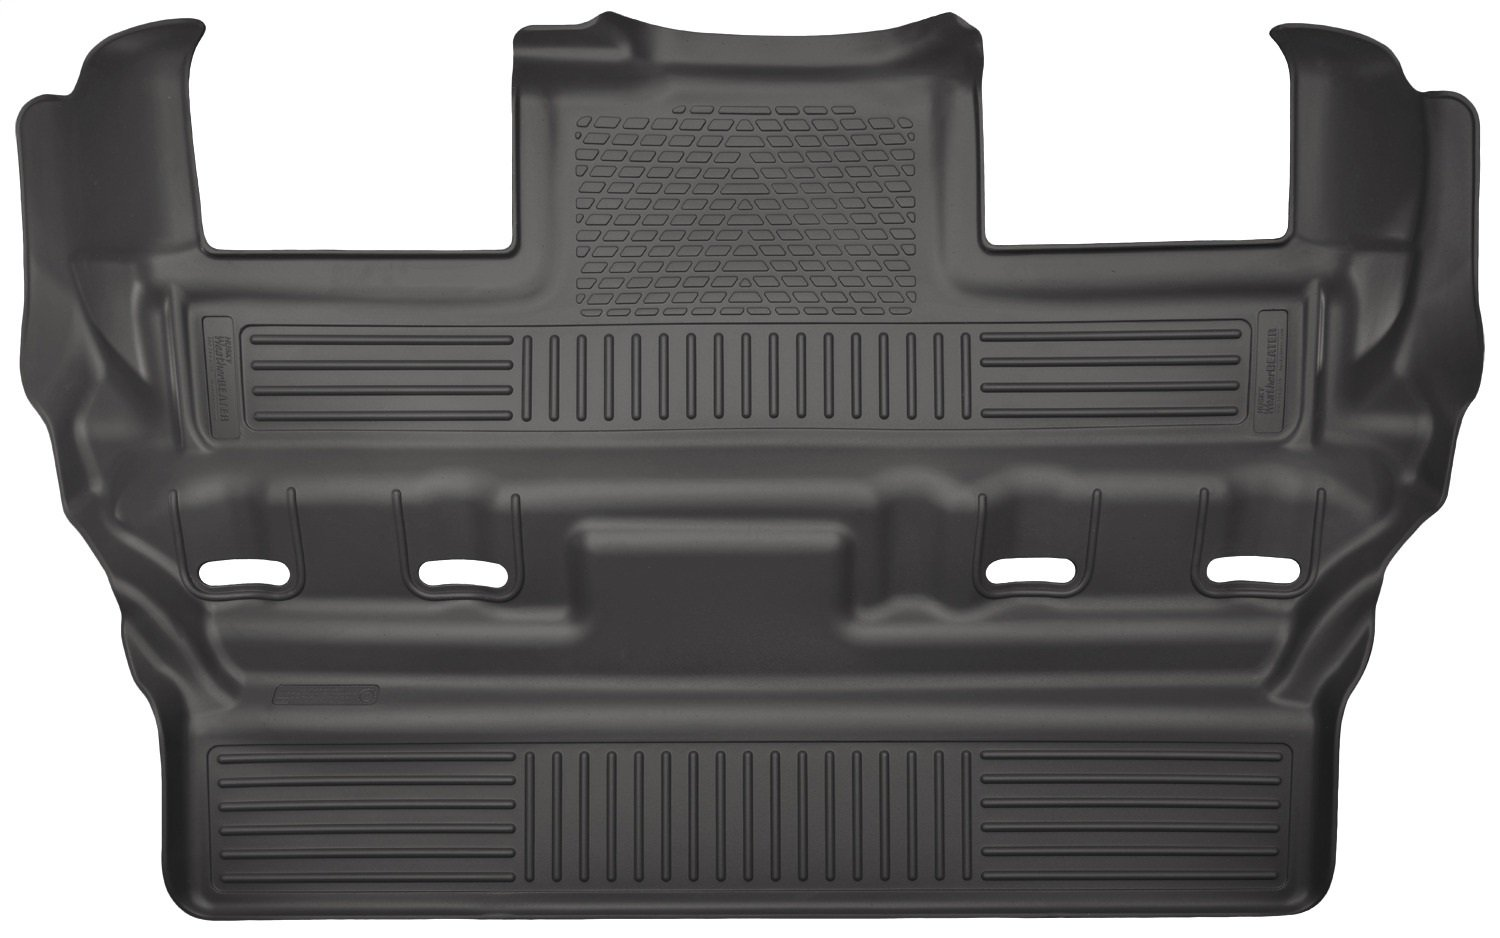 Husky Liners 3rd Seat Floor Liner Fits 15-18 Escalade/Tahoe WITH 2nd Row Bucket Seats 19301